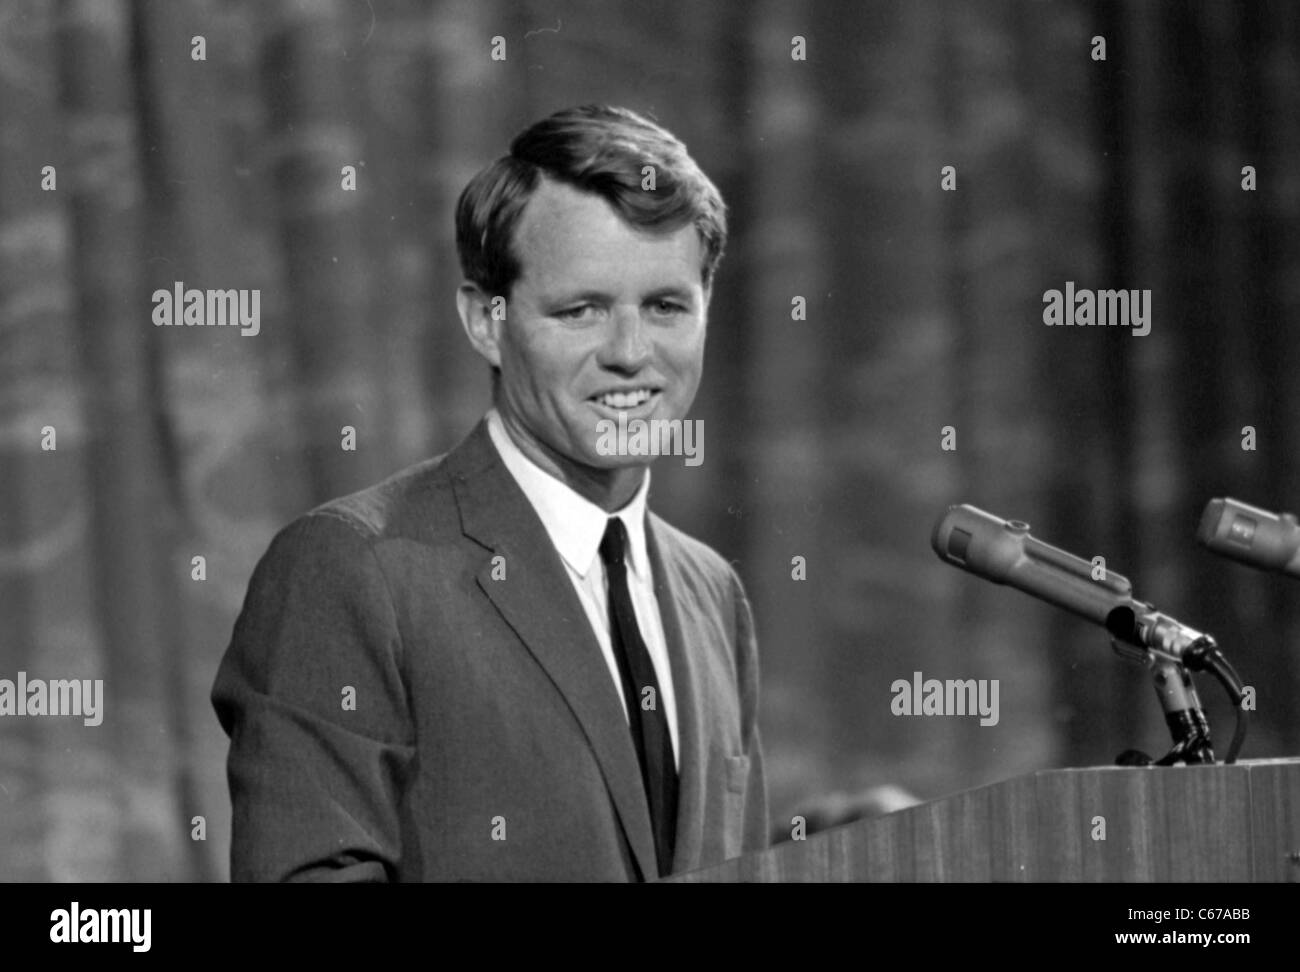 Robert Kennedy - Stock Image